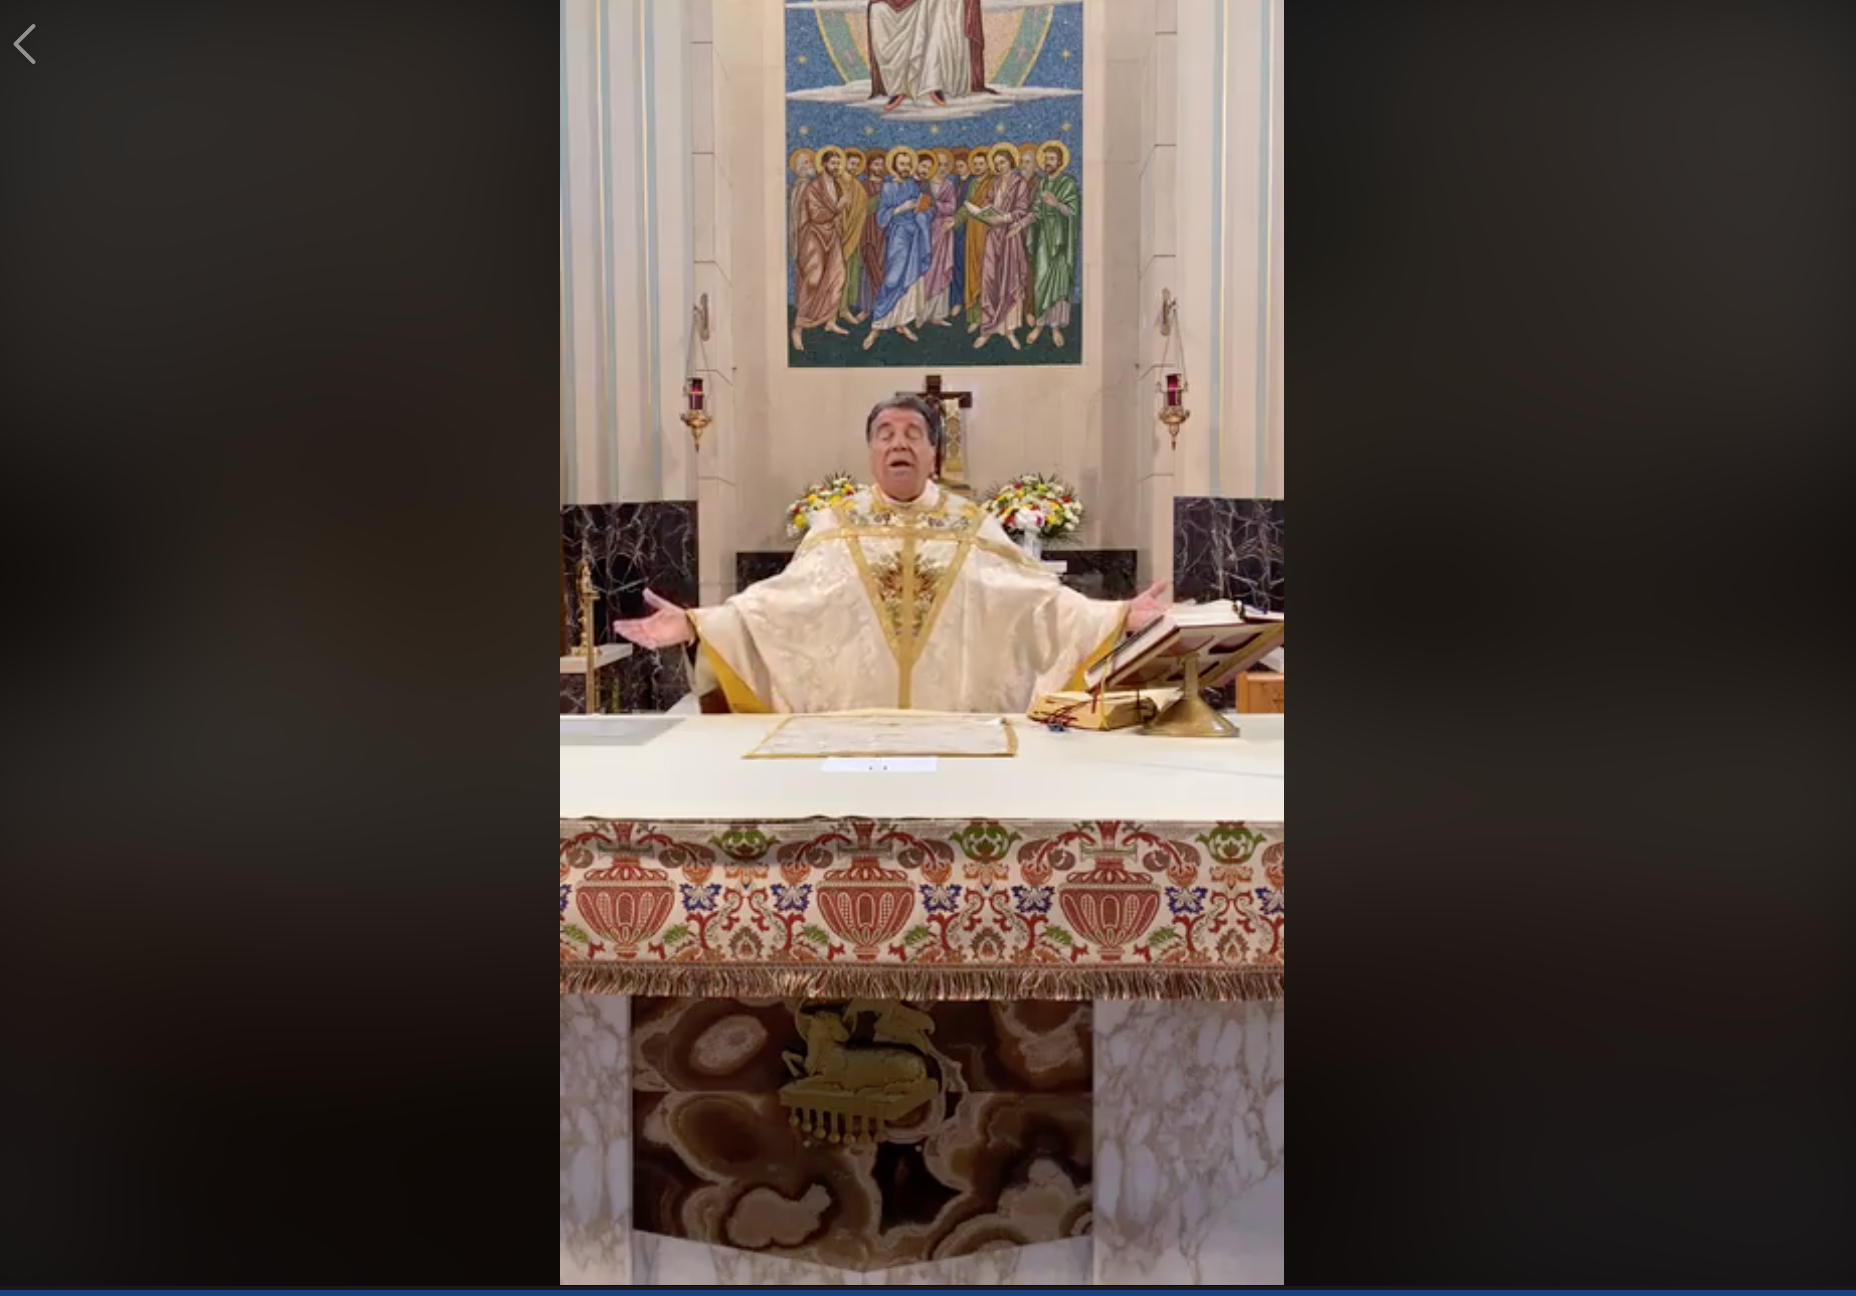 Caption: Monsignor David Cassato Gives Easter Mass on Facebook Live in Brooklyn, NY, Credit: St. Athanasius Facebook Page